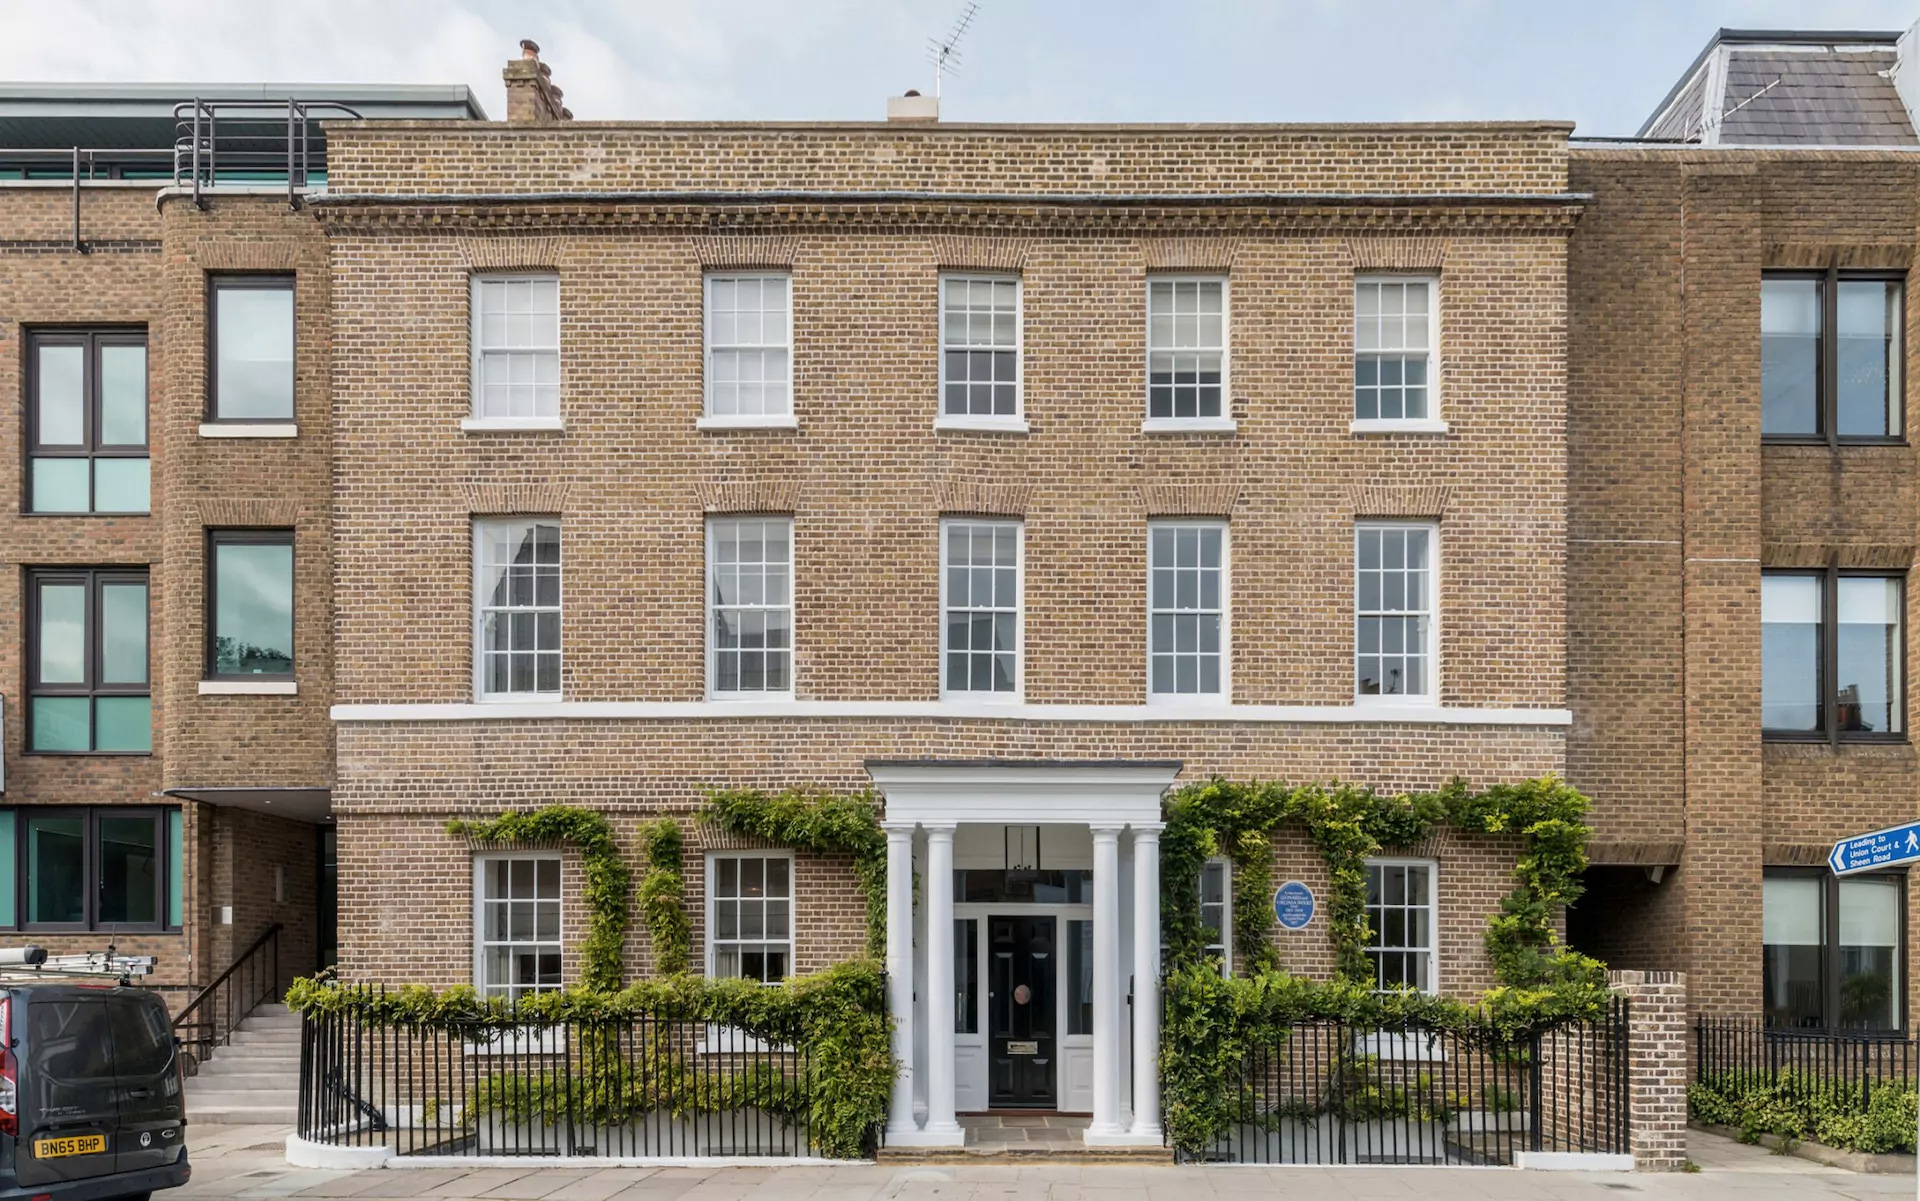 Virginia and Leonard Woolf's former home Hogarth House is for sale